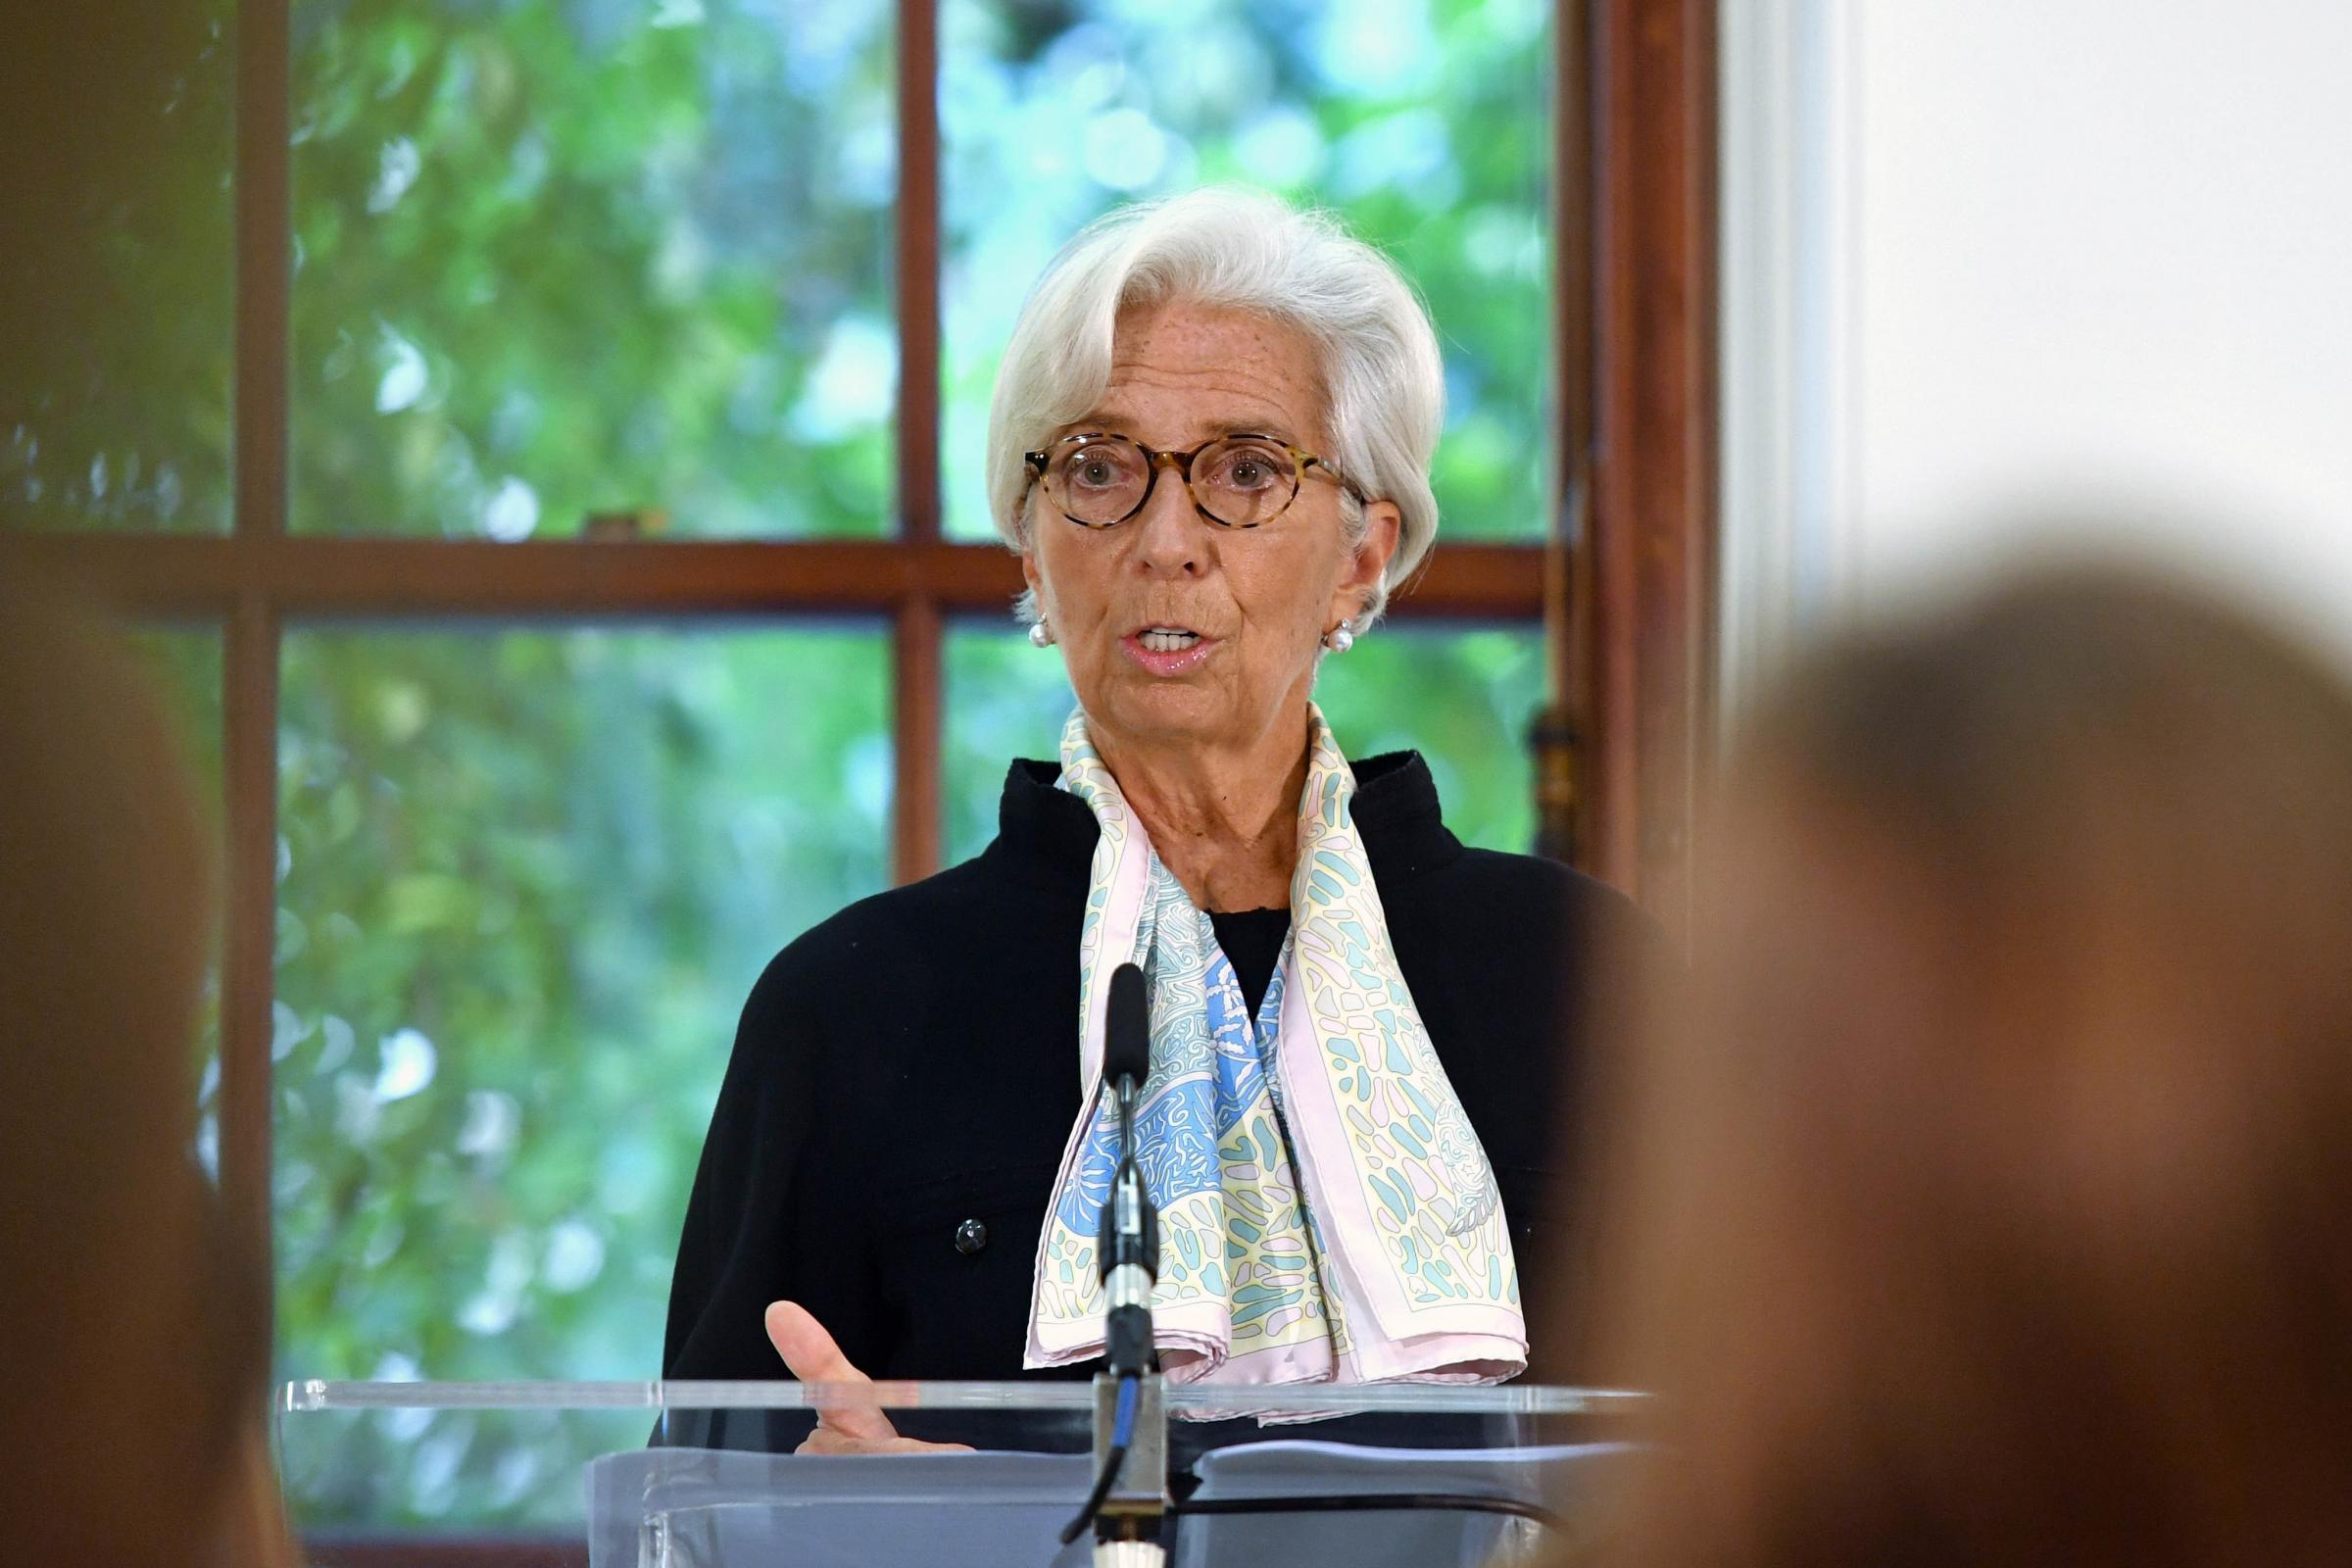 IMF warns of 8% GDP fall if UK does not agree Brexit deal